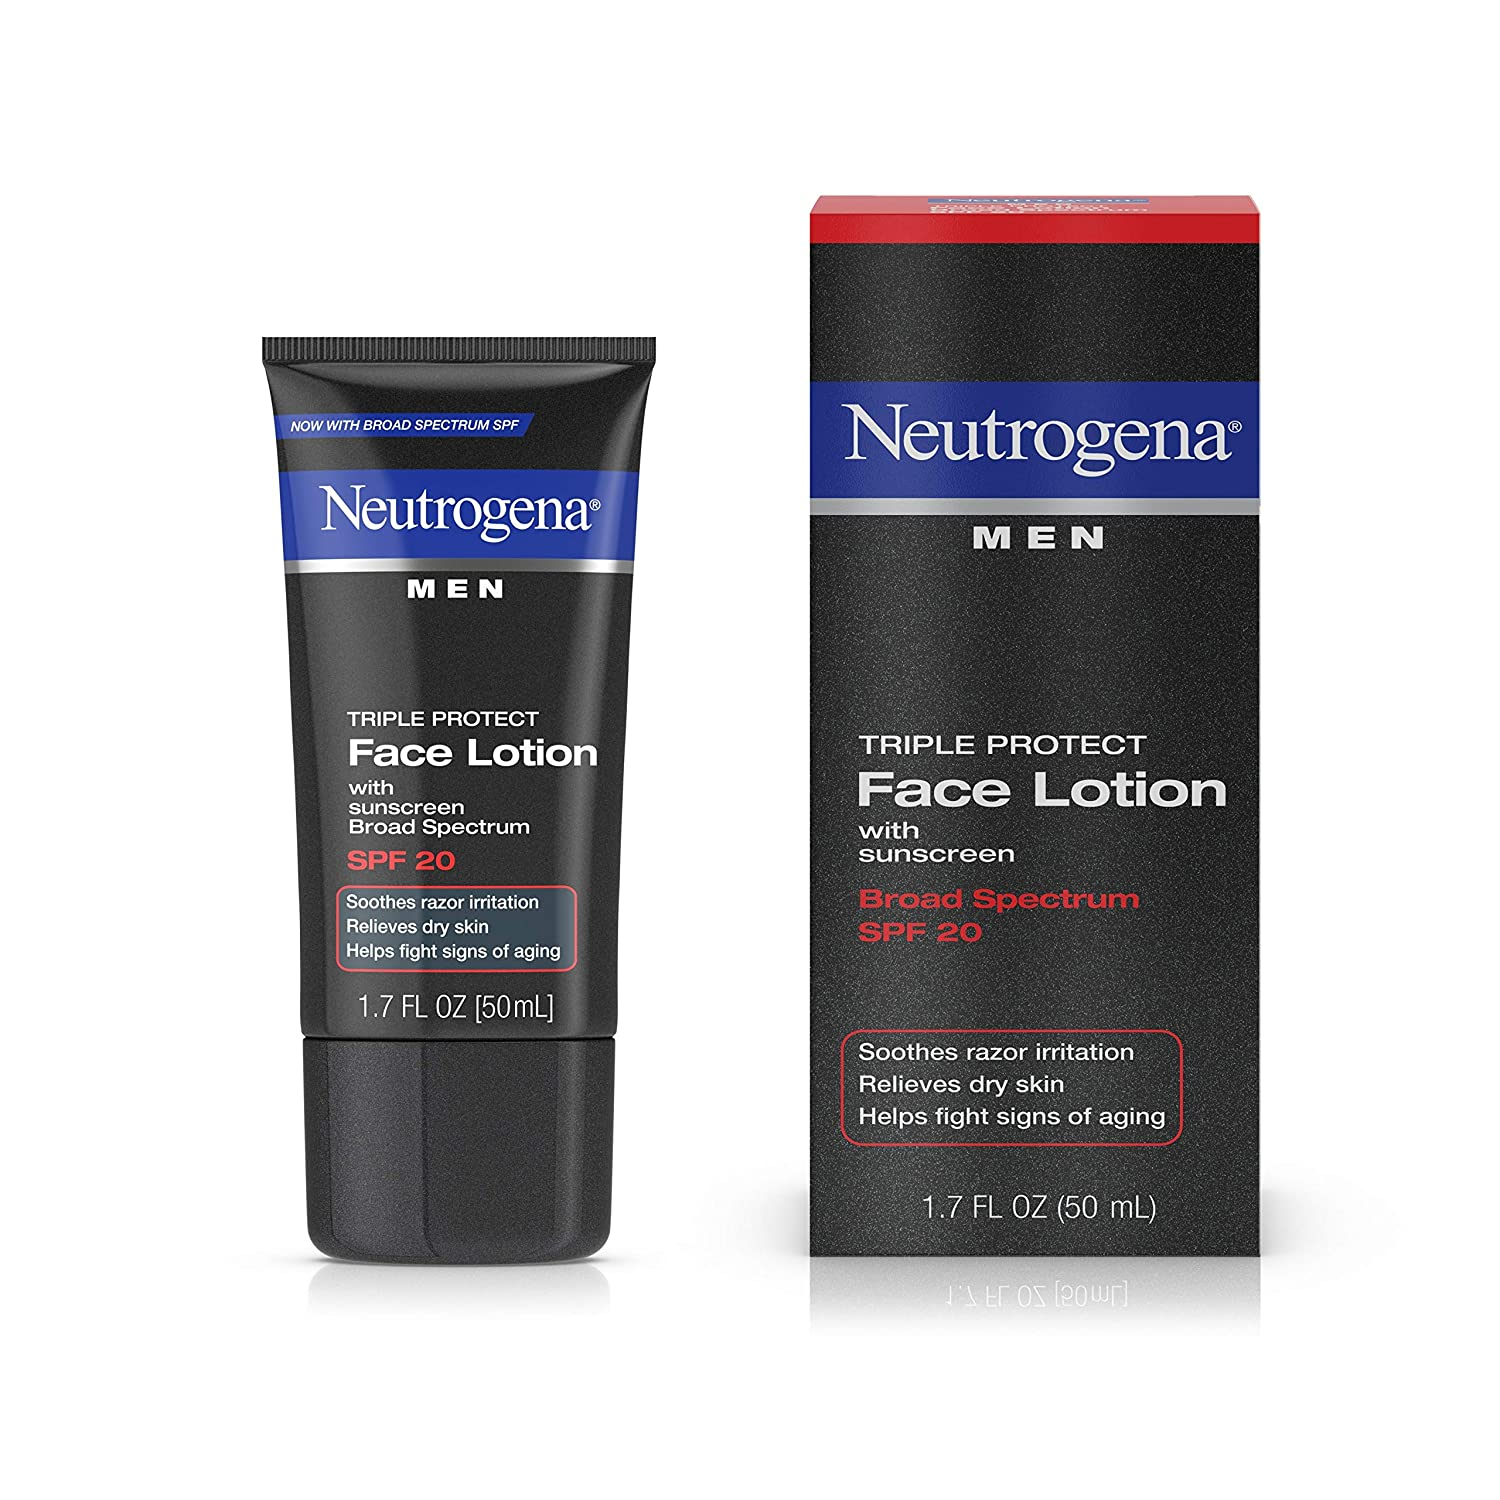 Neutrogena Triple Protect Men's Daily Face Lotion